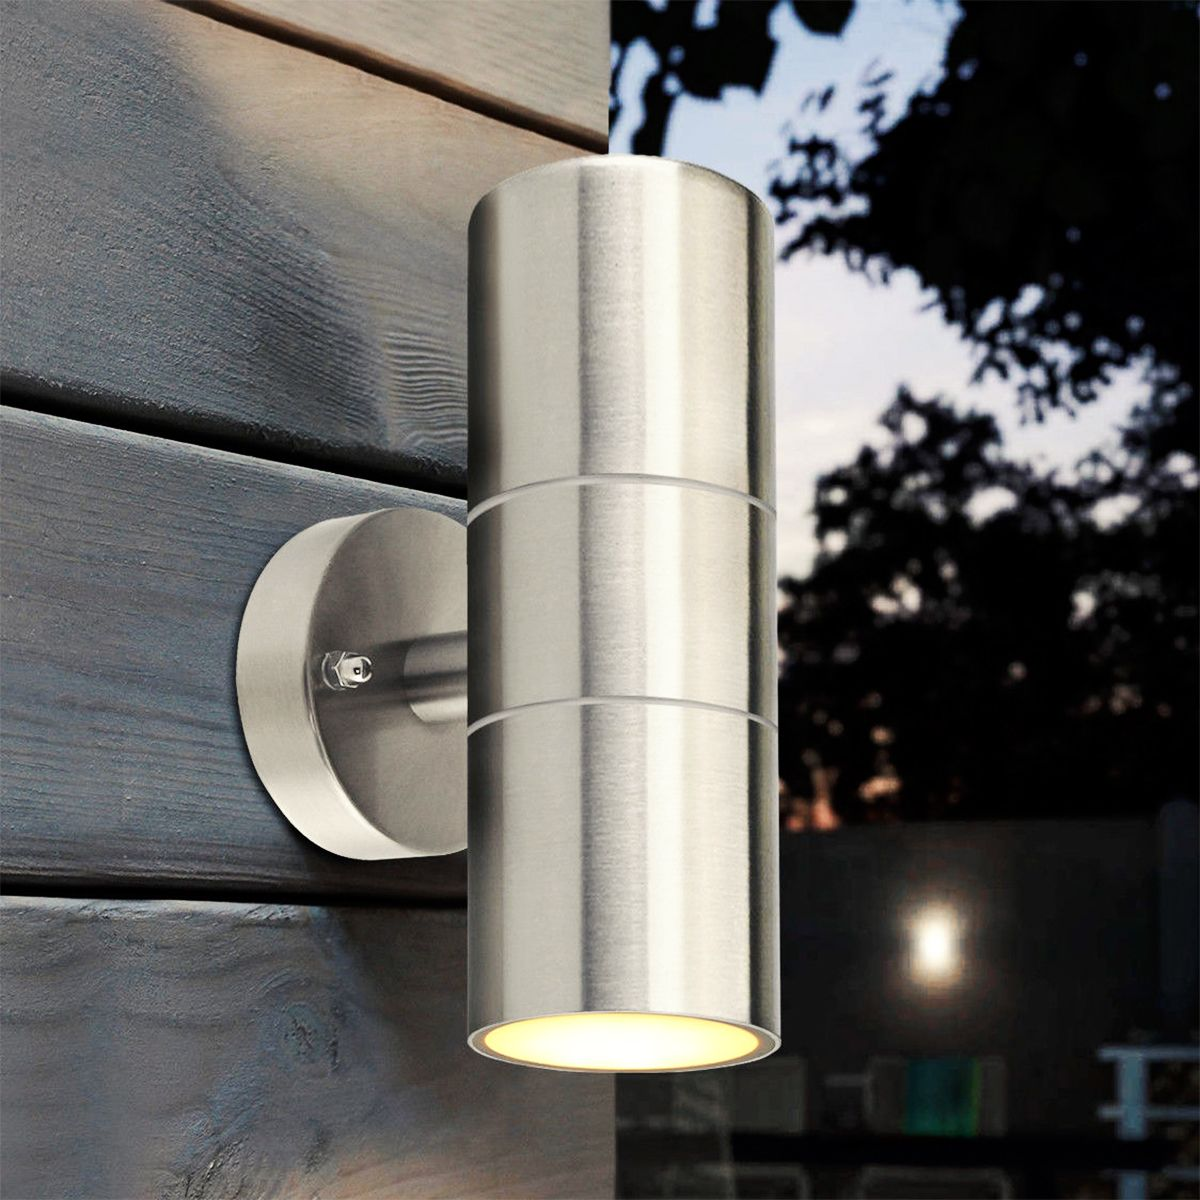 Stainless Steel Up Down Wall Light GU10 IP65 Double Outdoor Wall Light black led wall light waterproof ip65 stainless steel up down gu10 double wall lamp indoor outdoor wall lamp ac 85 265v